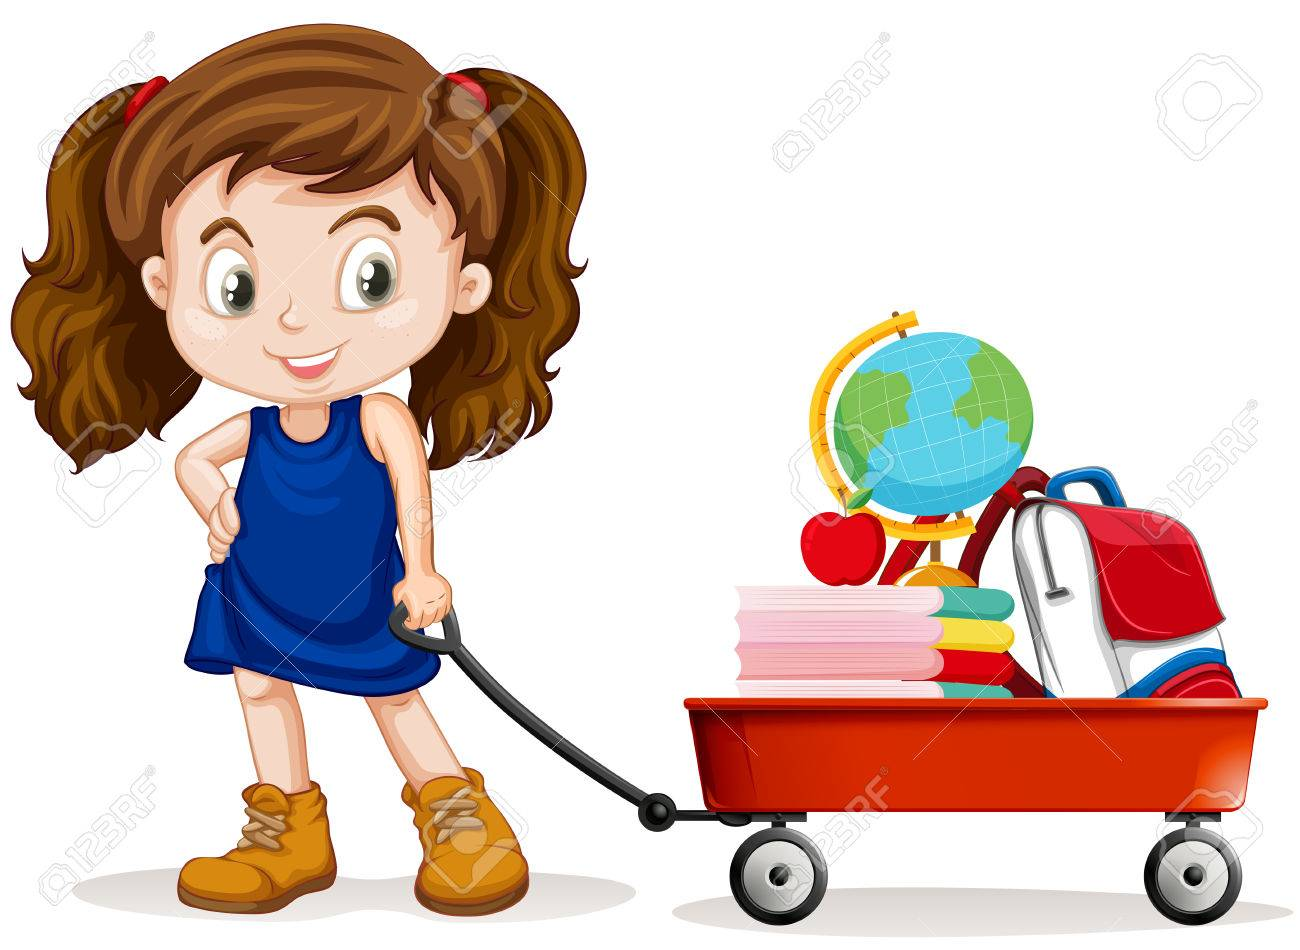 Little girl pulling wagon full of school objects illustration.